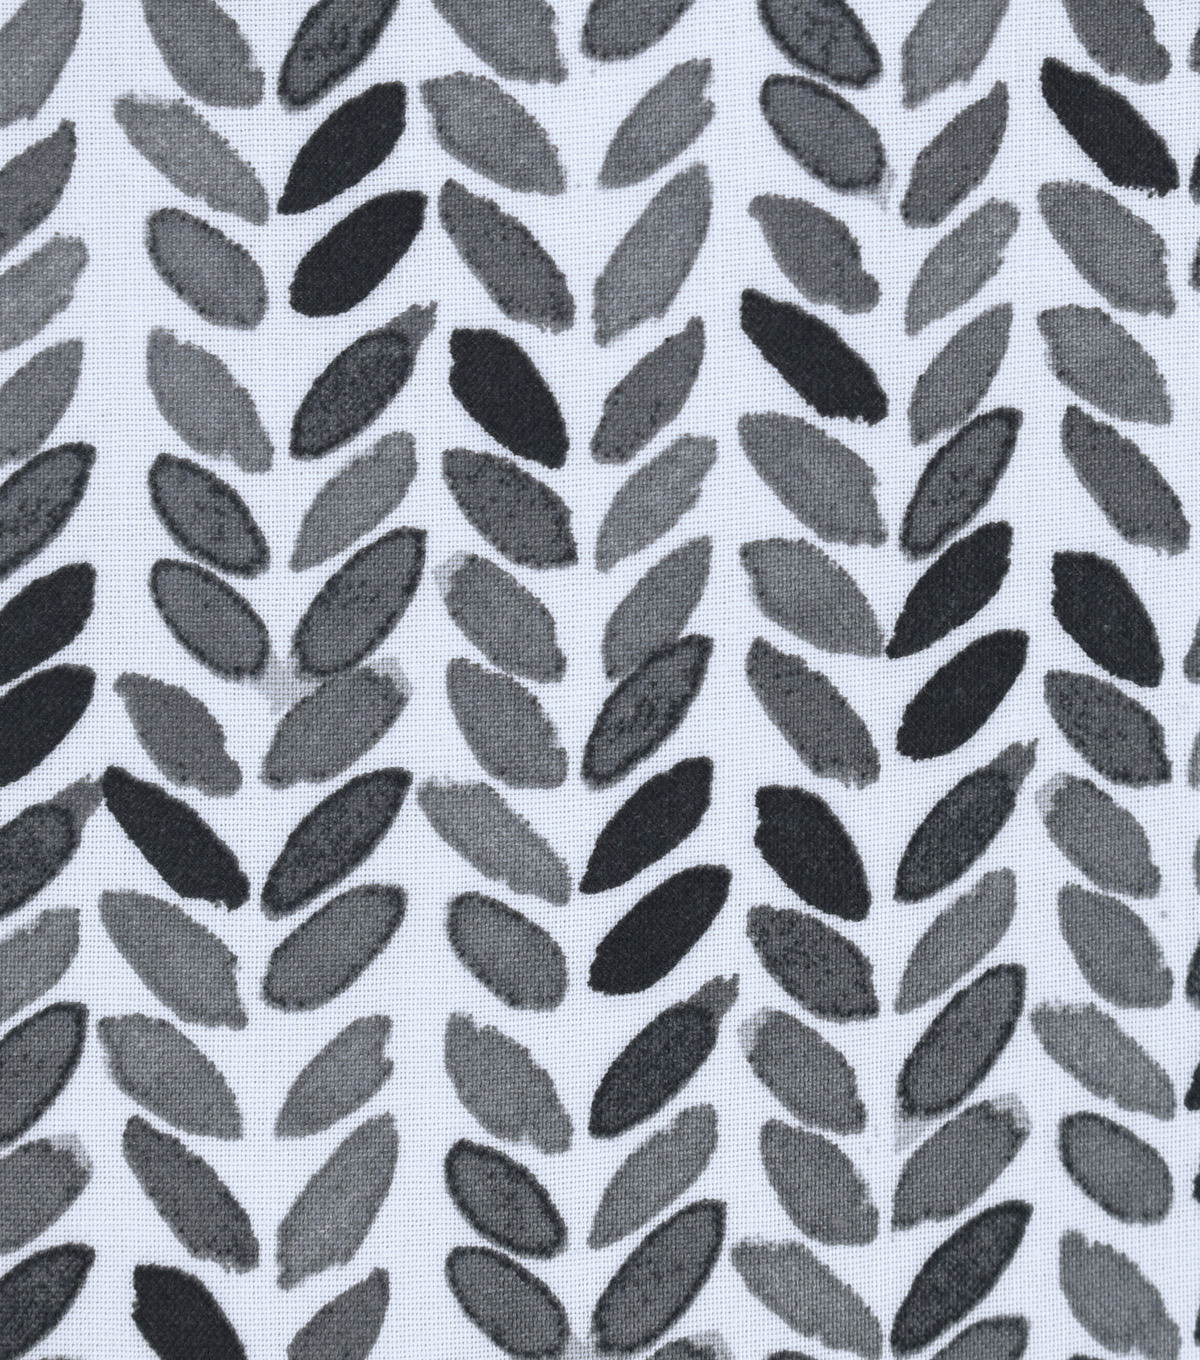 Silky Print Rayon Fabric 53 Black Gray Leaves On White Joann